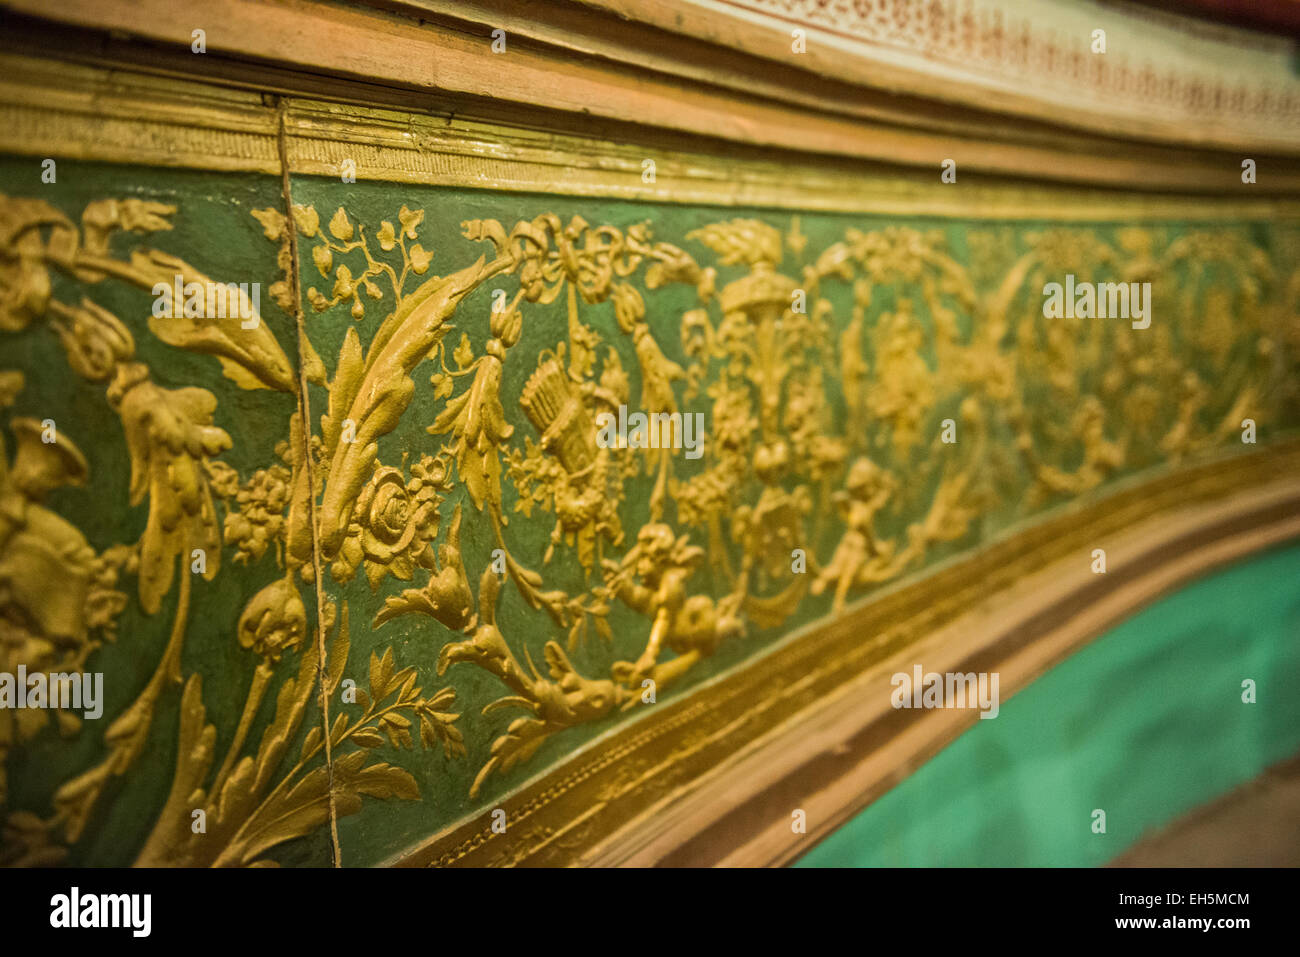 Embossed papier-mache inside the Victorian Gaiety Theatre in Shimla, Himachal Pradesh, India - Stock Image